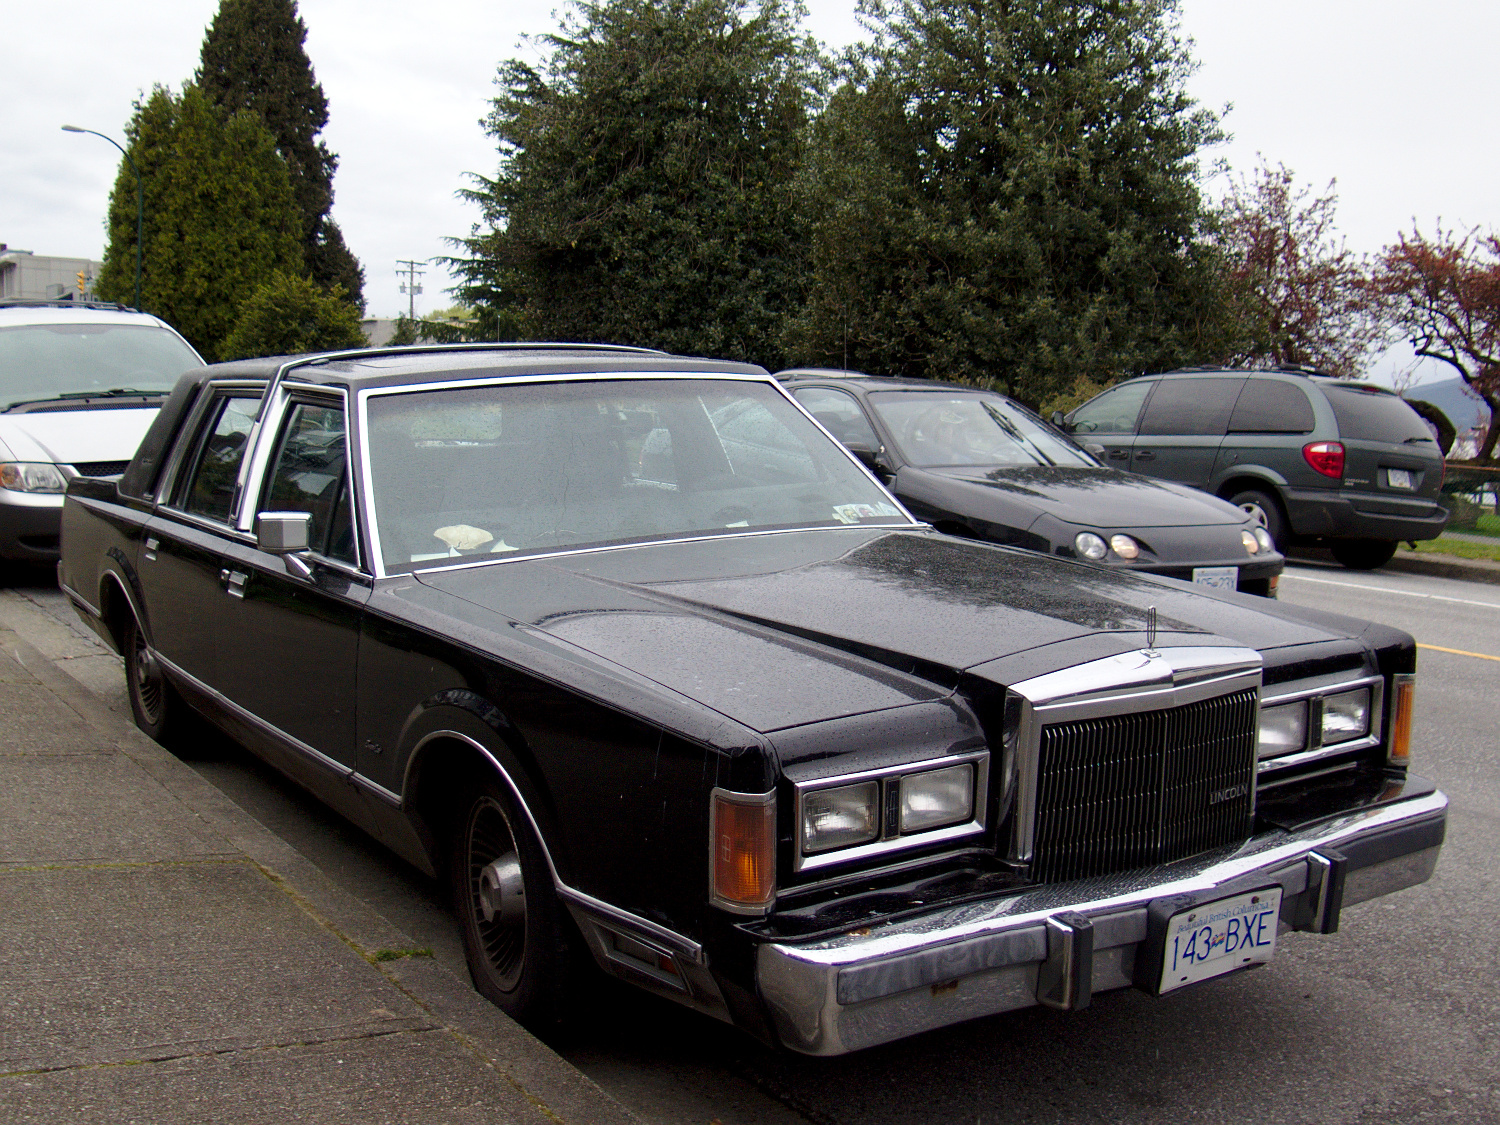 Old Parked Cars Vancouver 1988 Lincoln Town Car